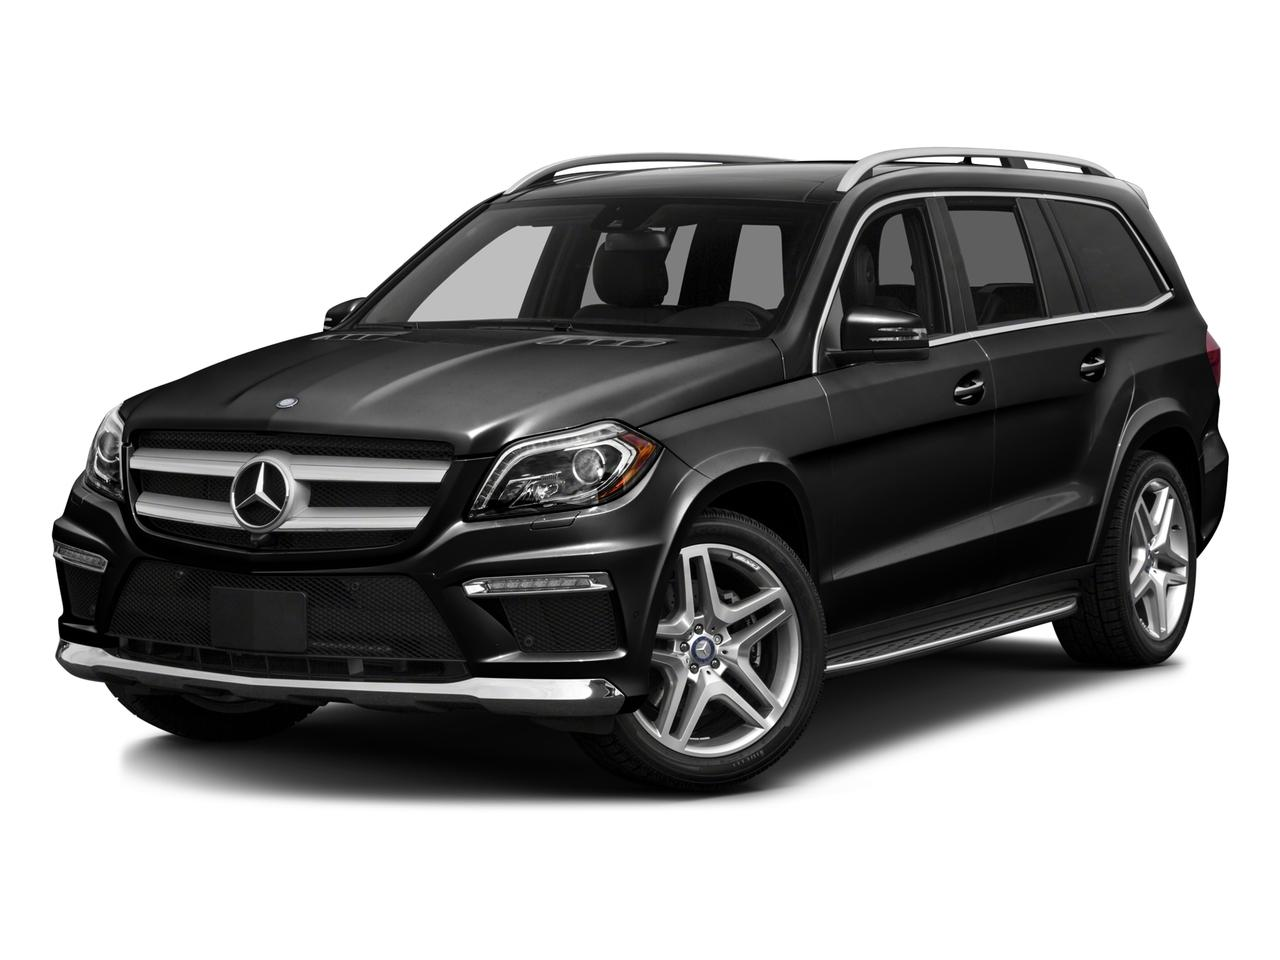 2016 Mercedes-Benz GL Vehicle Photo in Florence, AL 35630